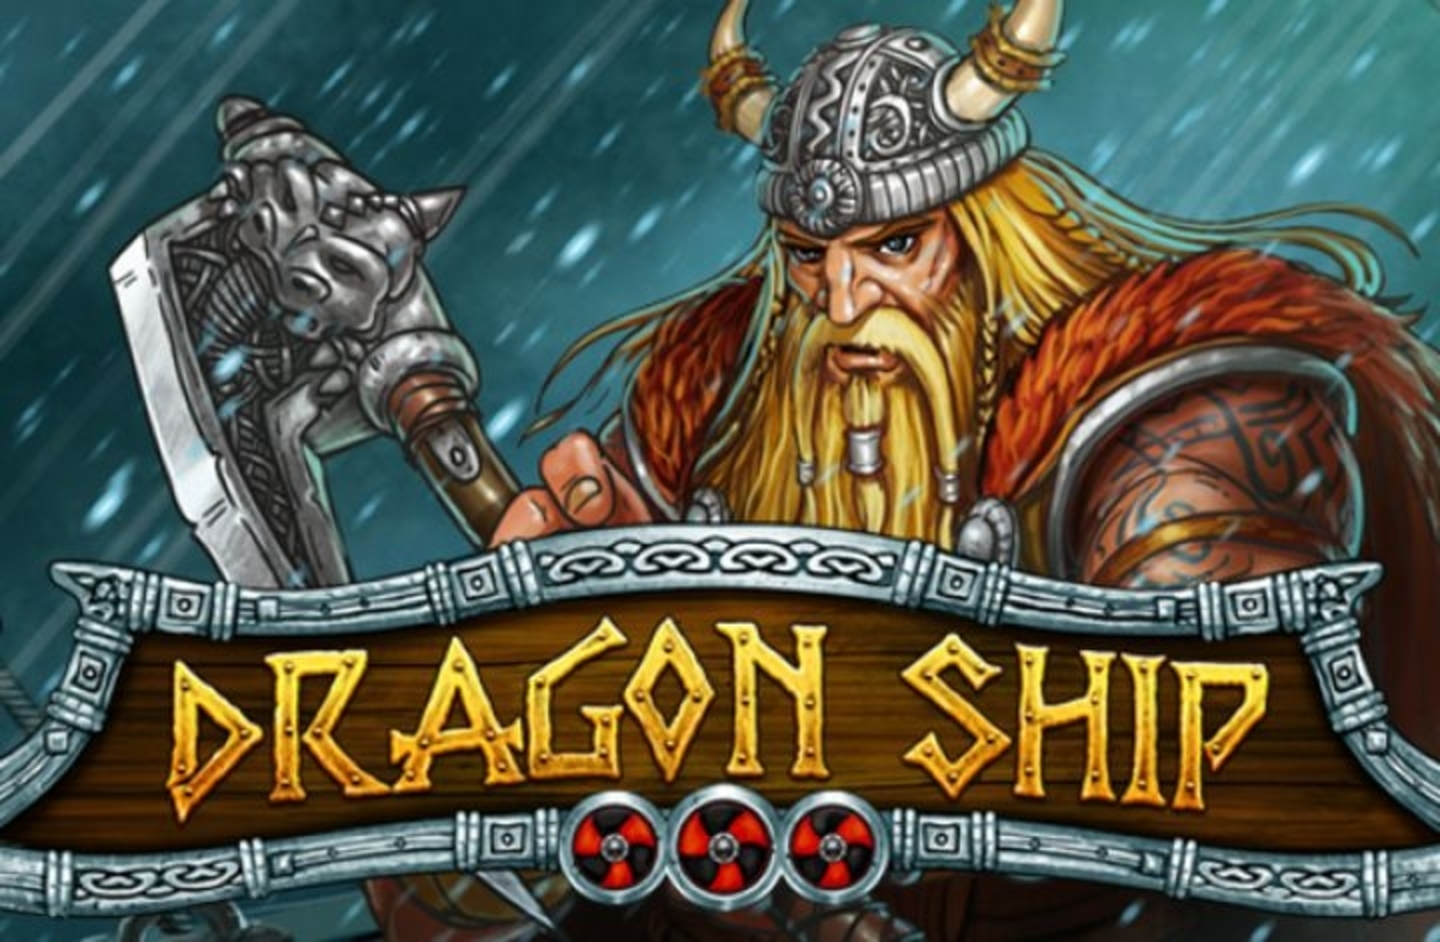 The Dragon Ship Online Slot Demo Game by Play'n Go